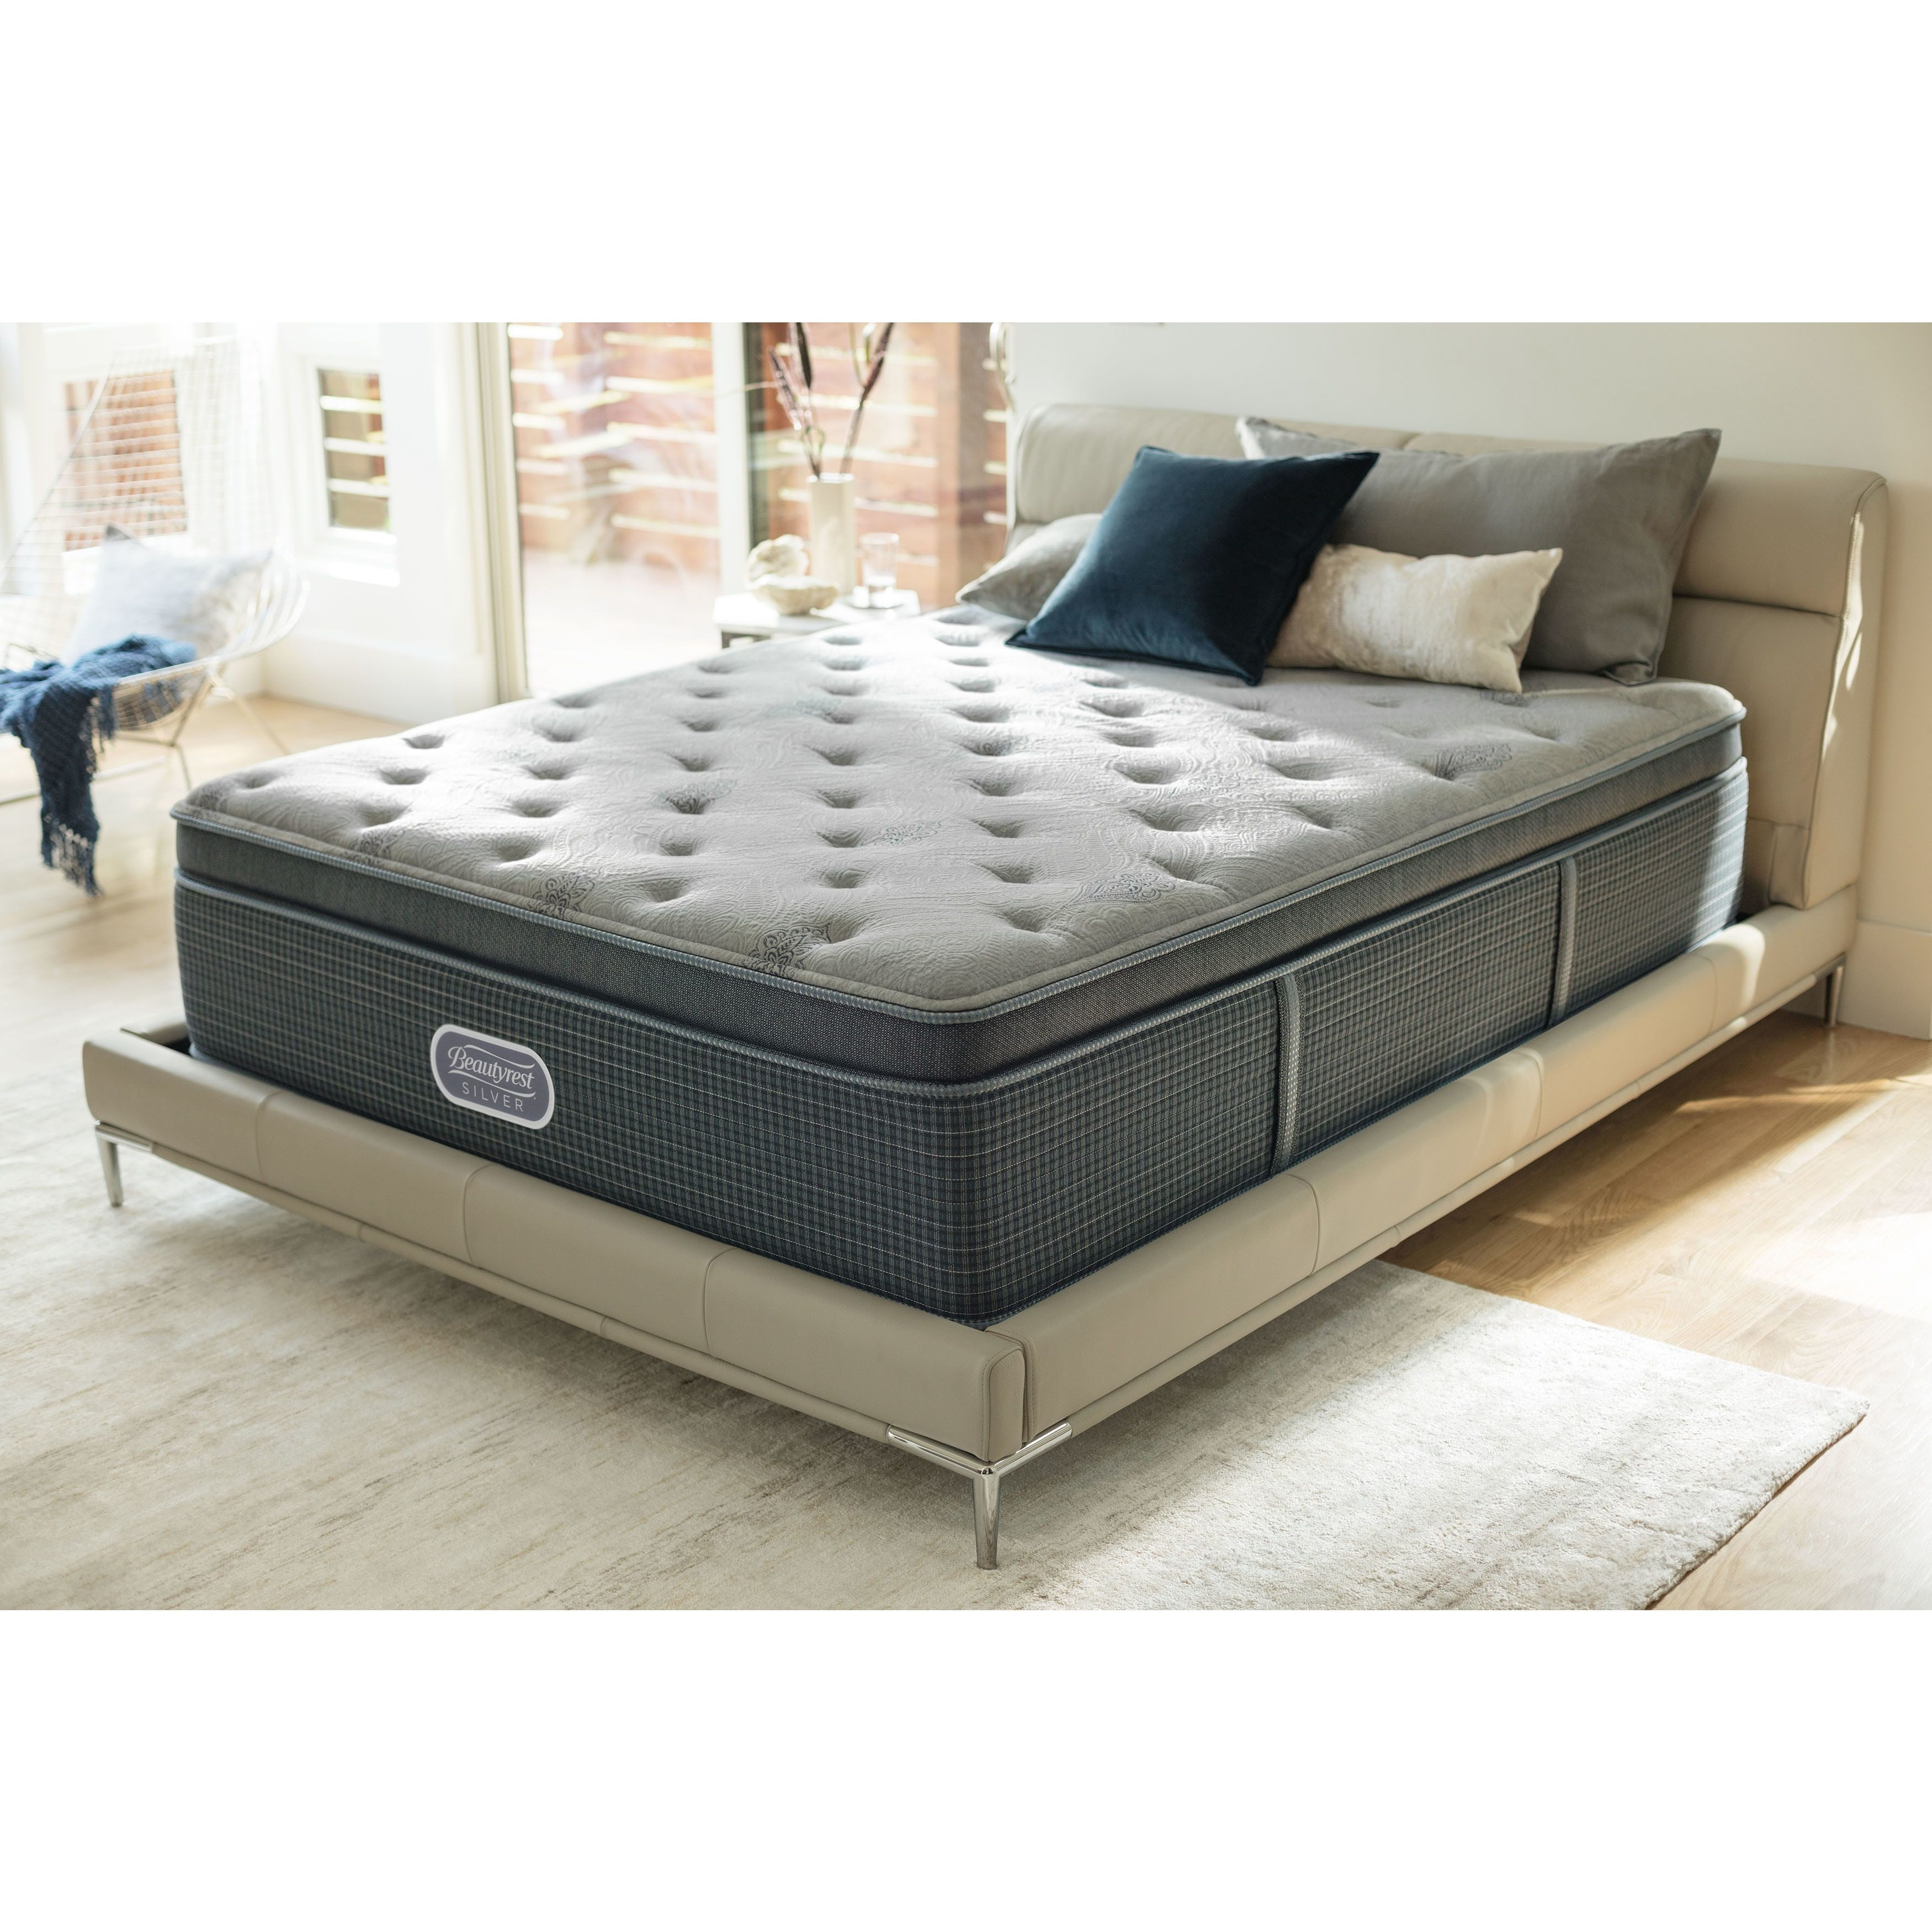 Beautyrest Silver Discovery Bay Luxury Pillow Top 15 5 Inch Full